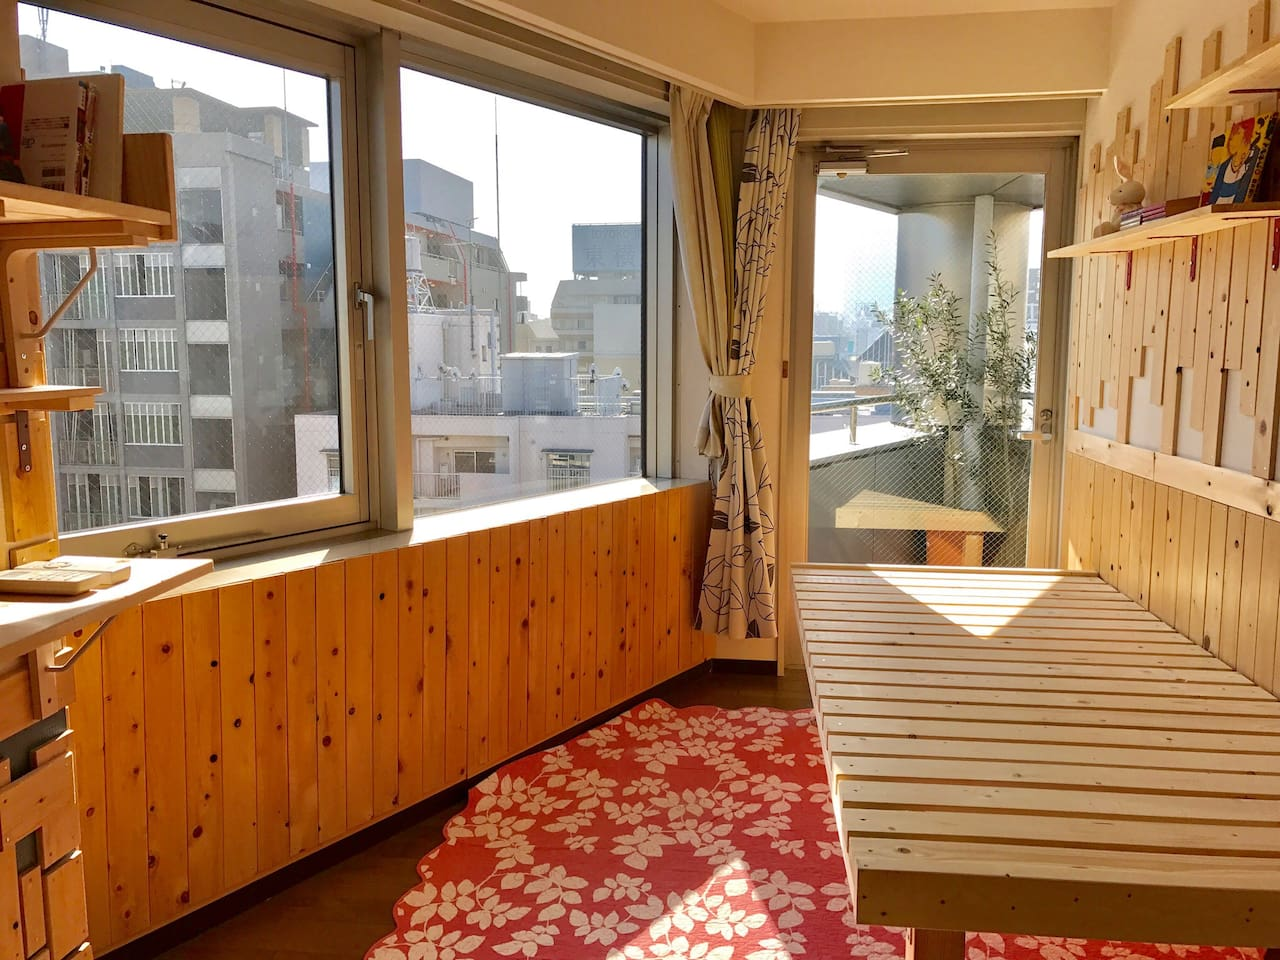 PRIVATE ROOM ... Maximum 2 people  Wooden floor   FAST WIFI  A/C  HEATER      Toilet and Bathroom are sharing